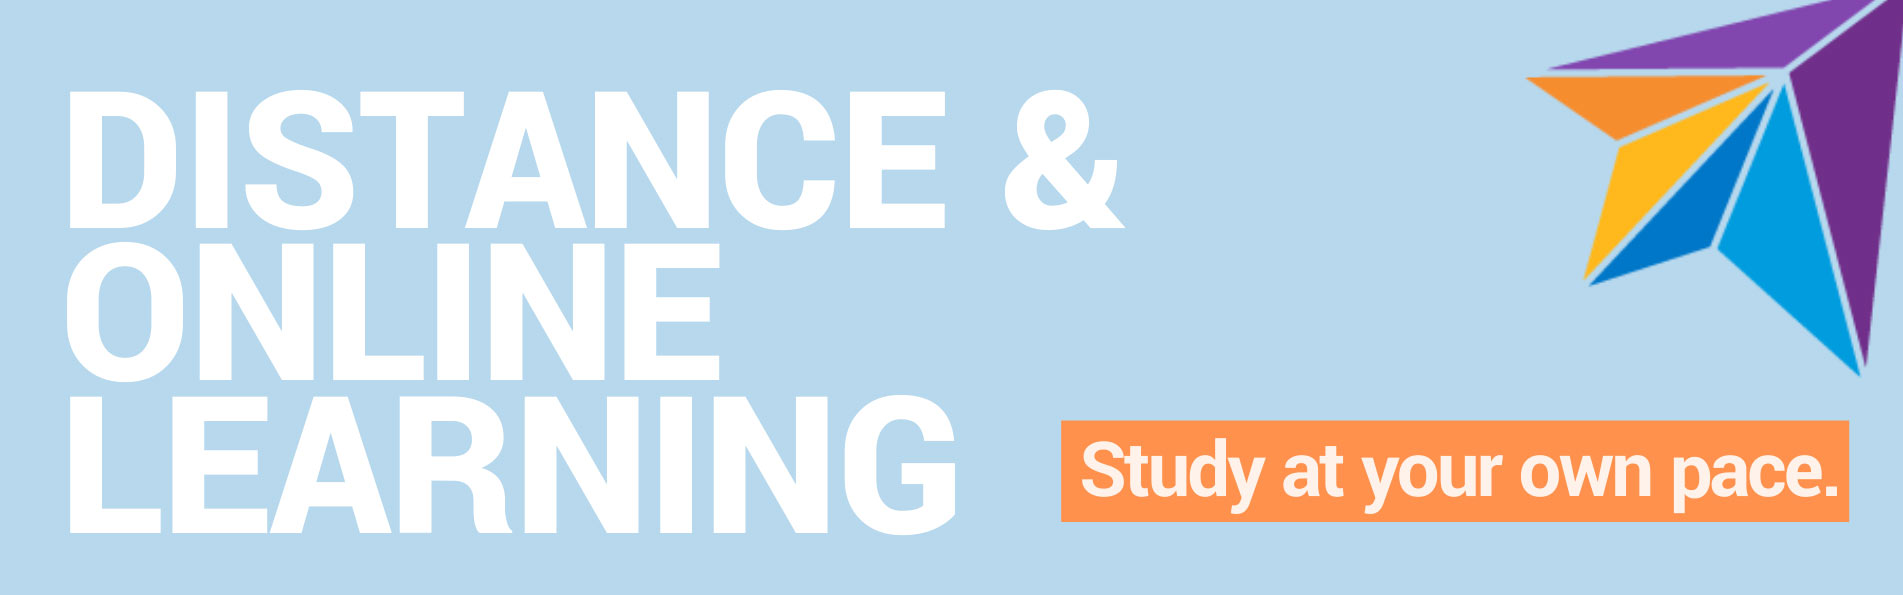 distance learning banner